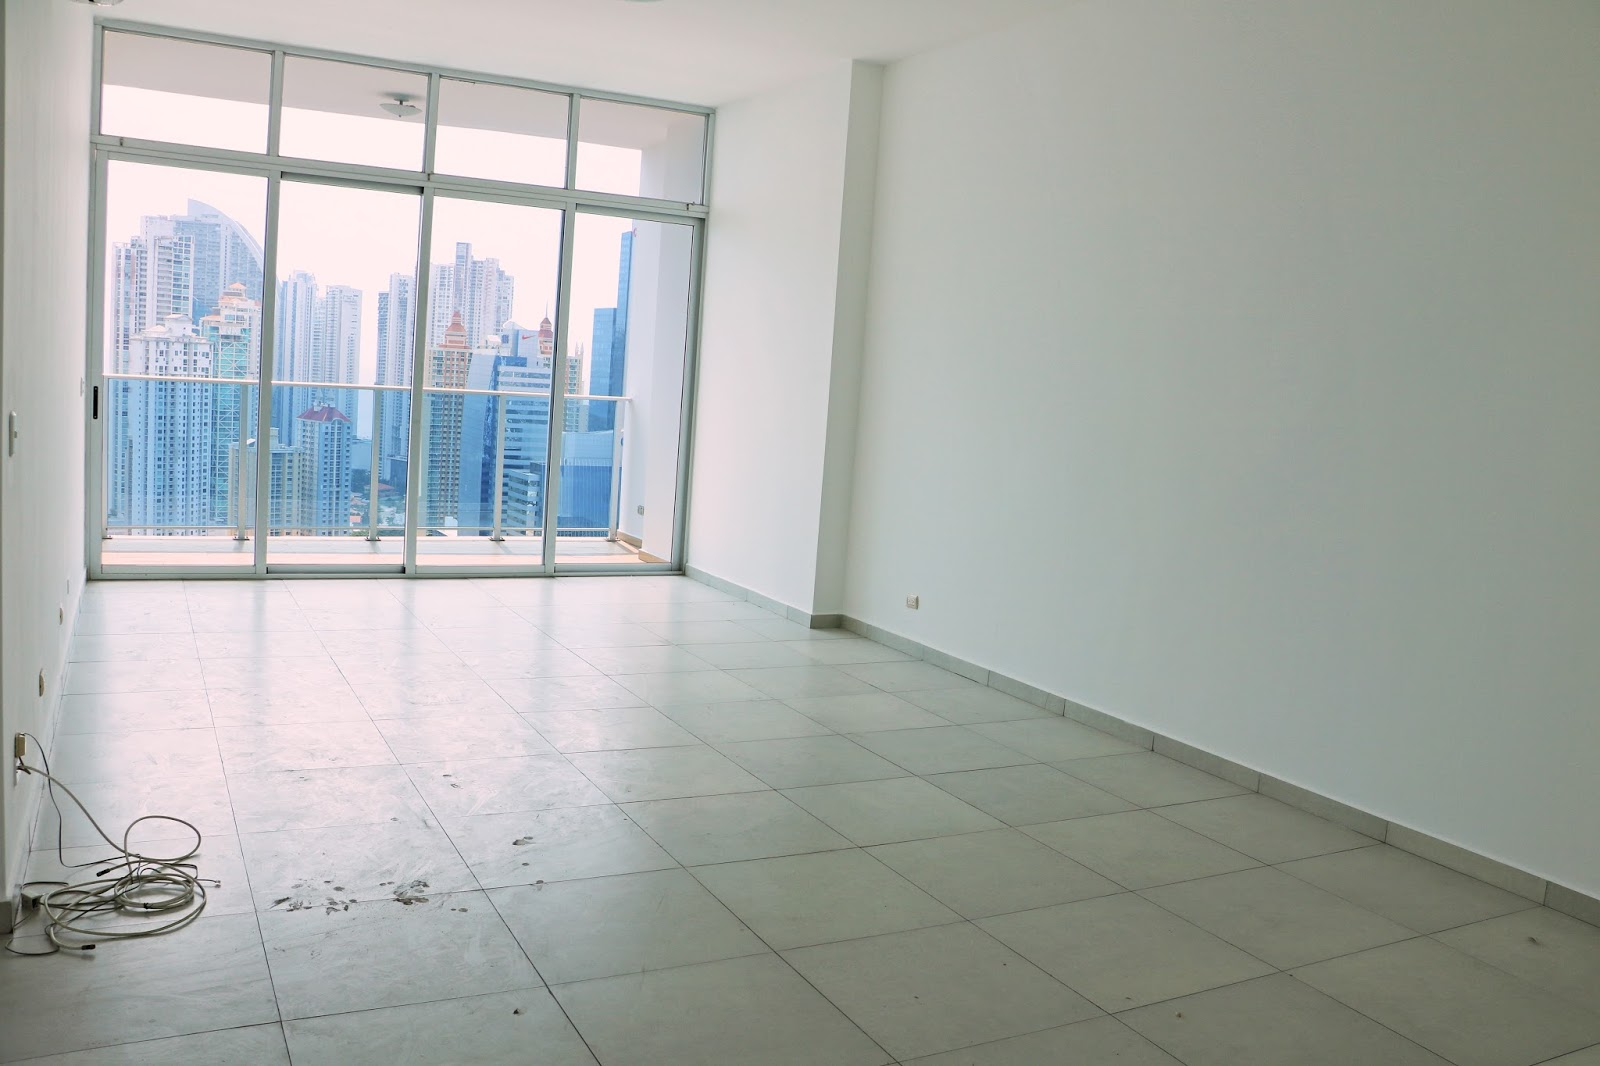 Apartment with a beautiful view of Panama City, Panama